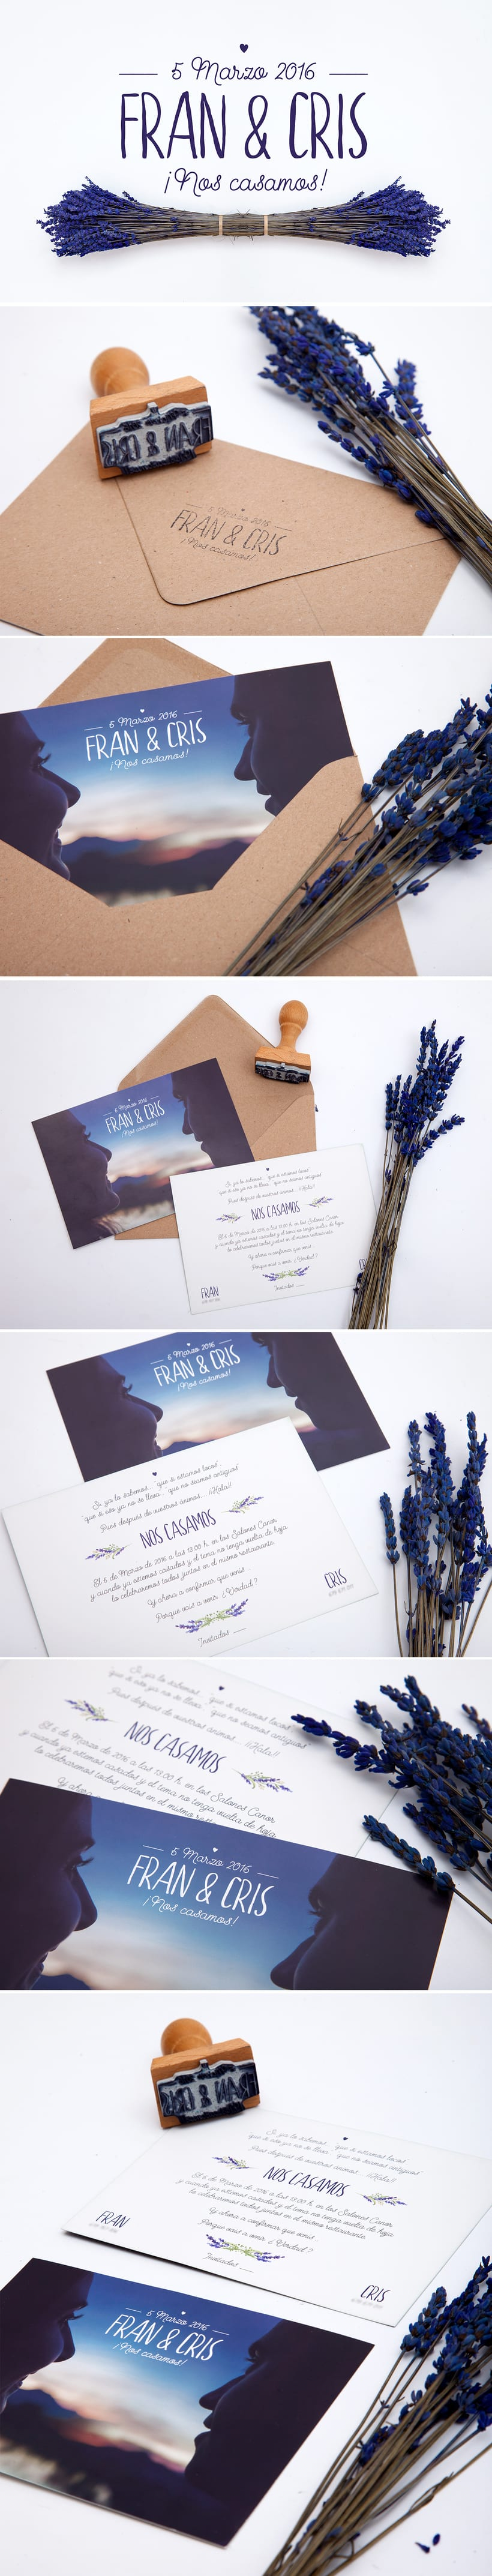 Fran&Cris - Wedding Invitation -1